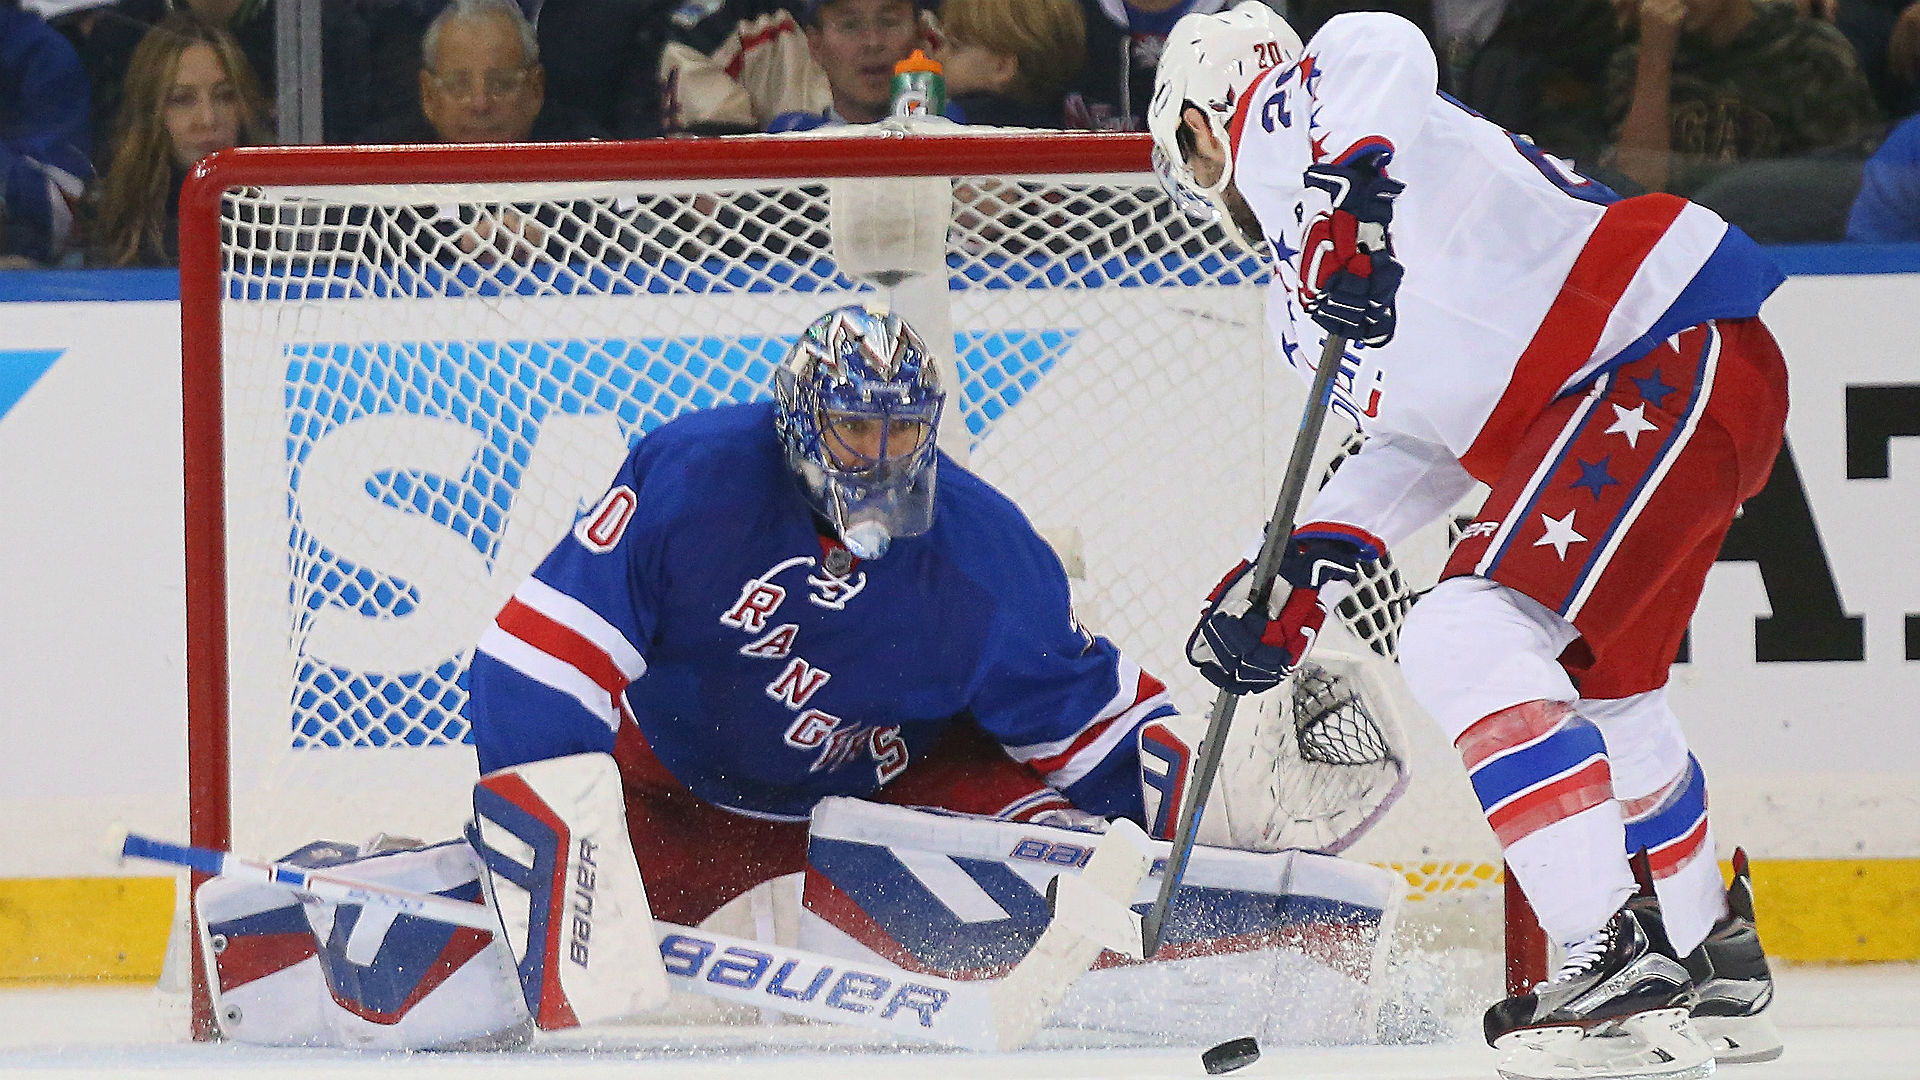 NHL playoff odds and betting lines – Rangers-Caps Game 3 a virtual coin flip